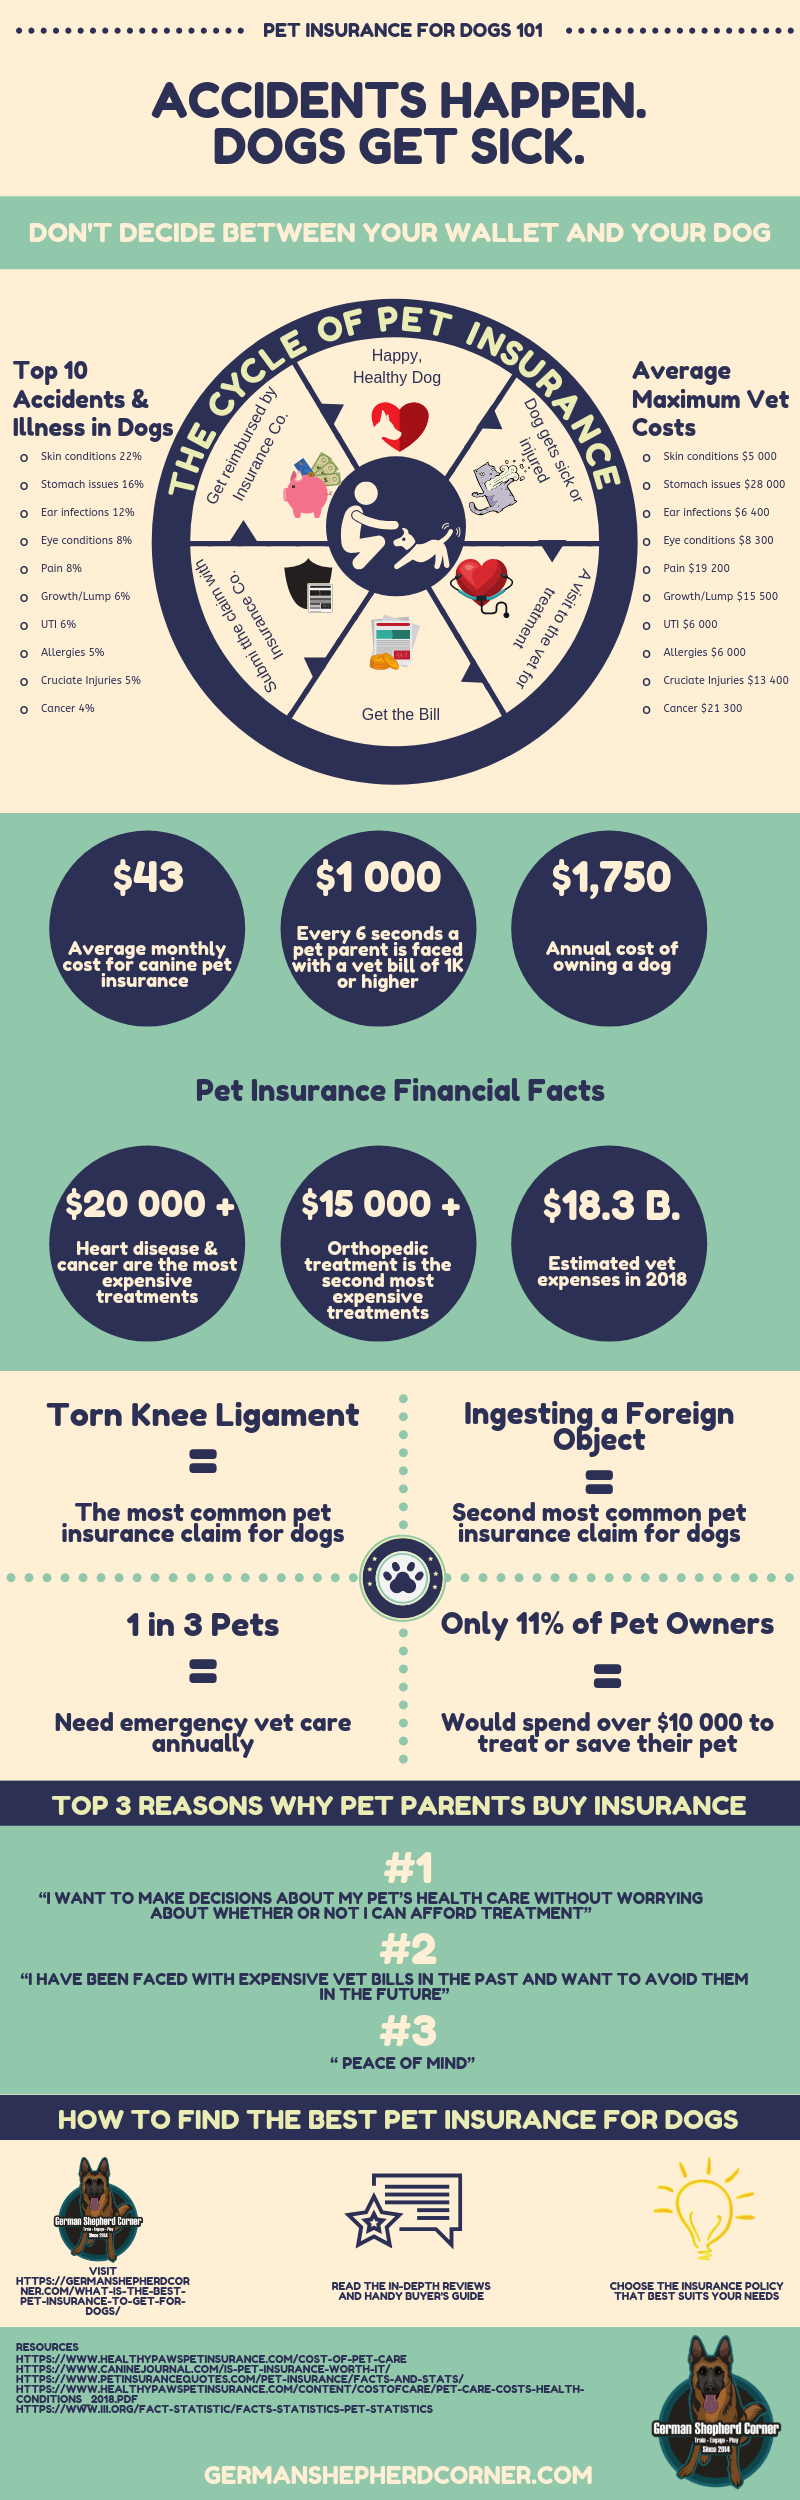 Facts and stats About Pet Insurance for dogs